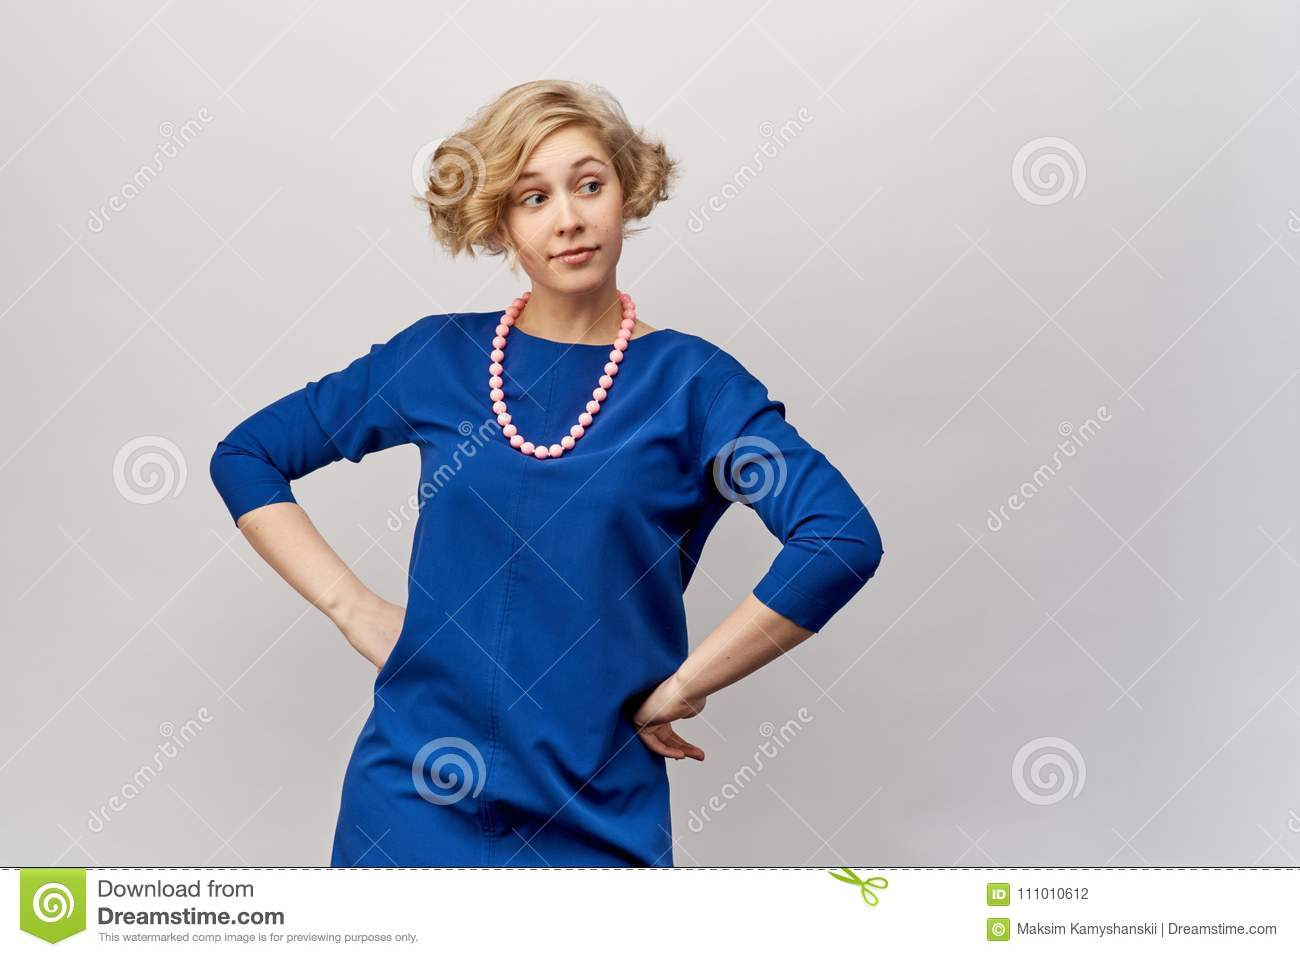 ebbf978be Young Blonde With Short Hair And Curls, Posing For Studio Shooting ...